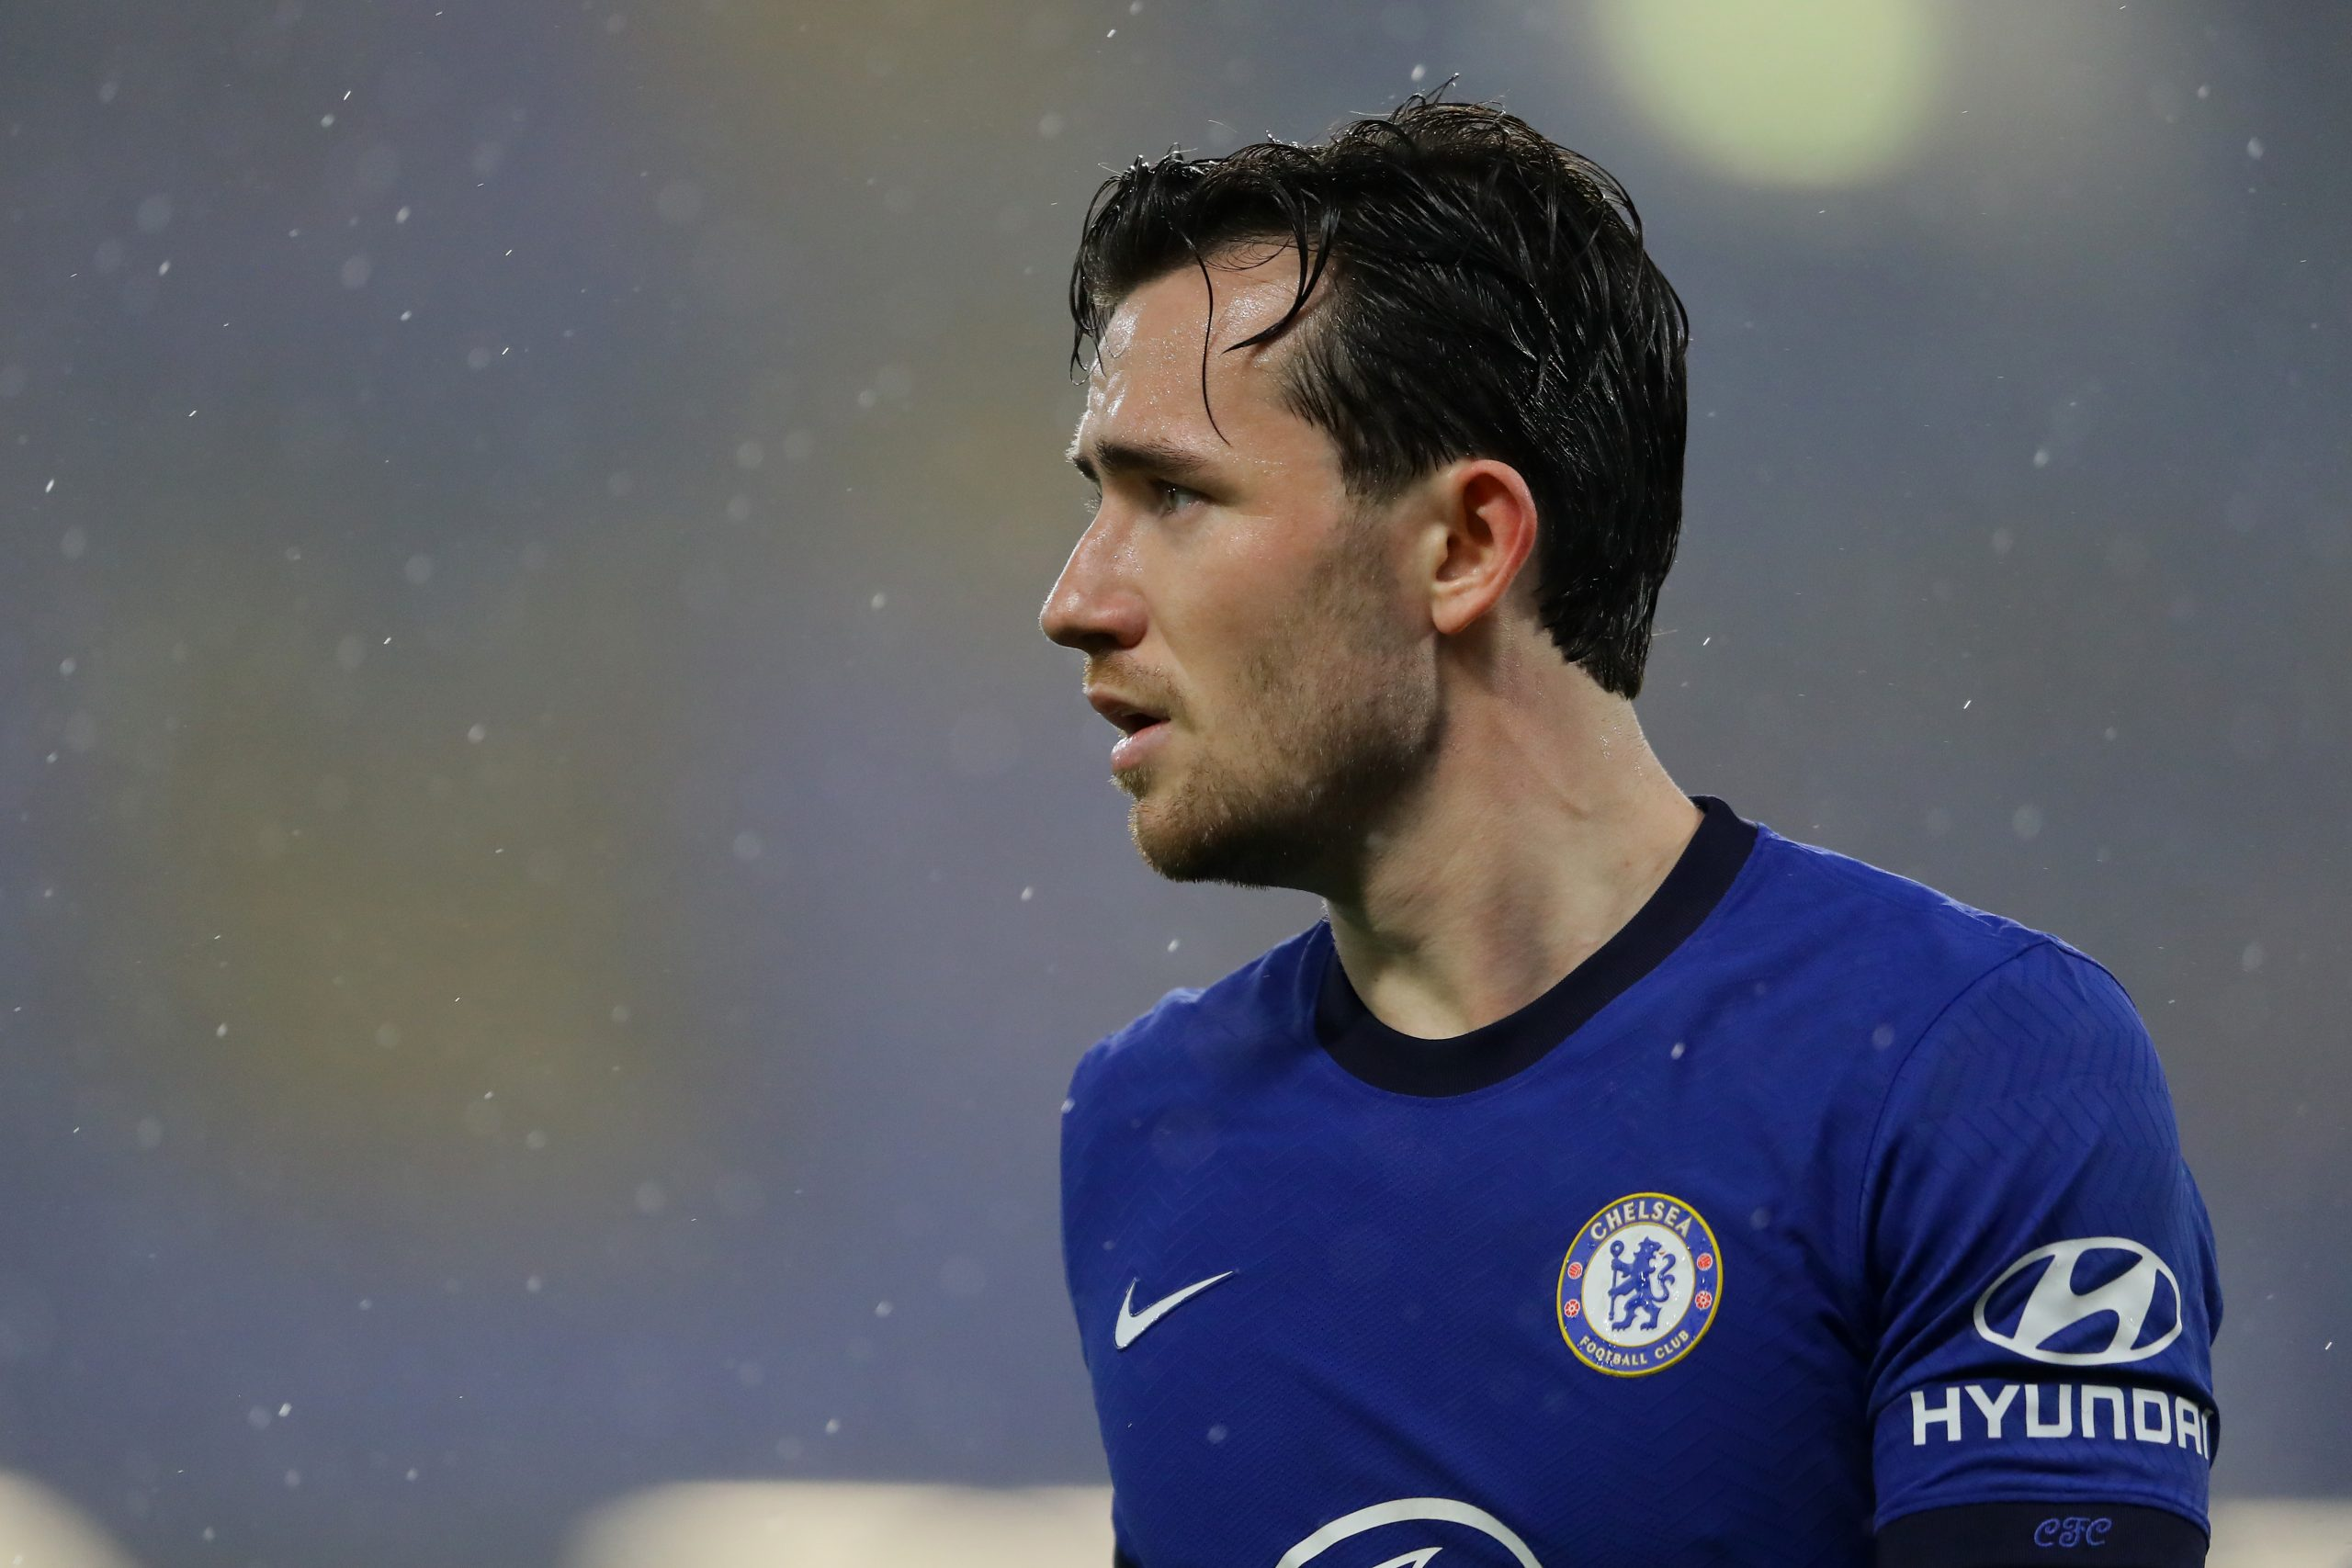 Ben Chilwell in action for Chelsea. (GETTY Images)